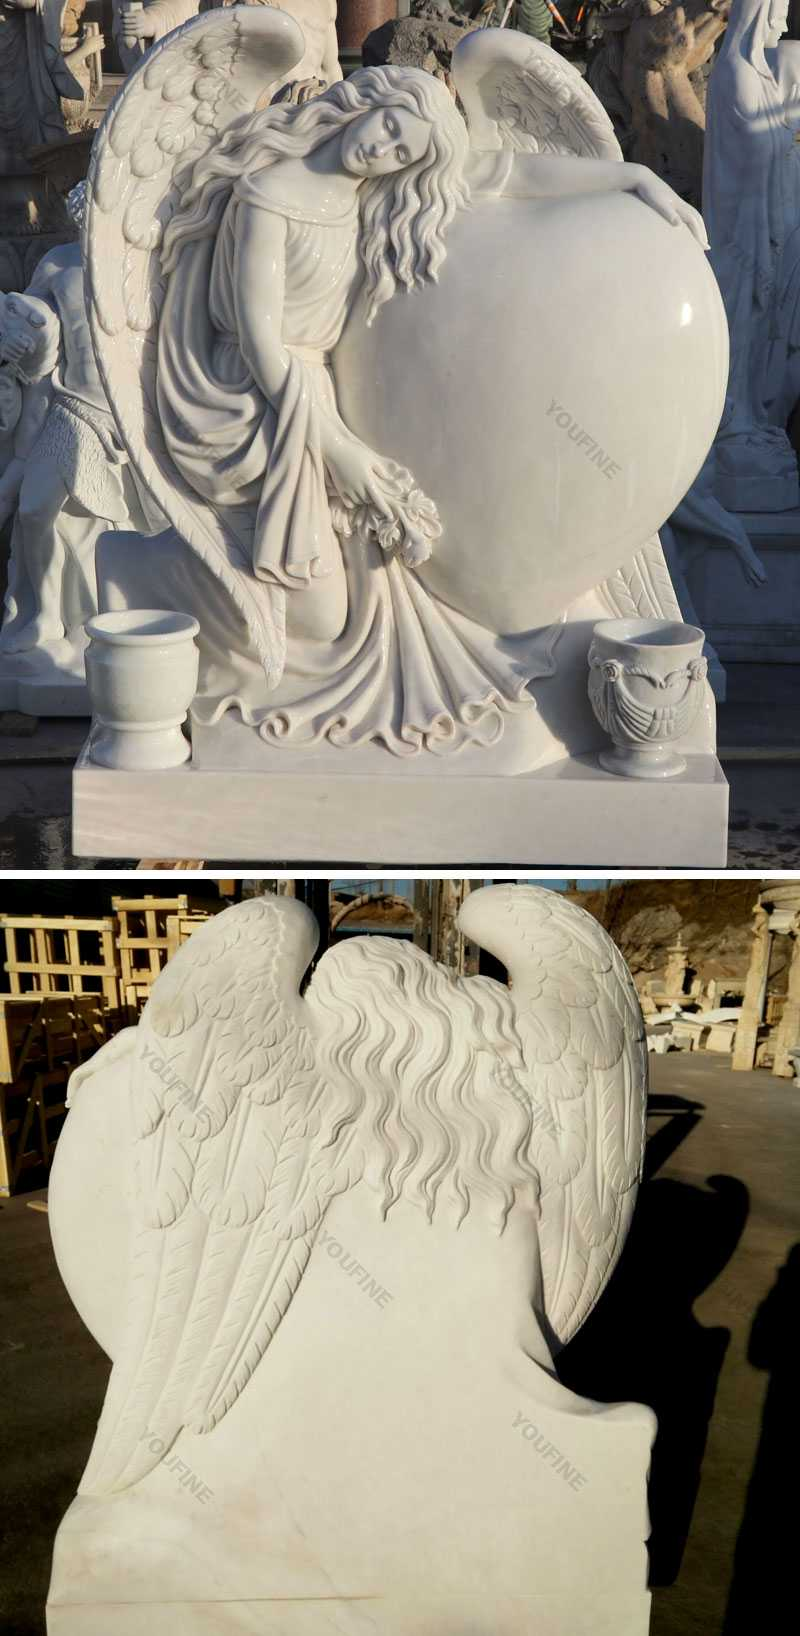 Details of grief angel with heart marble headstone monuments designs for sale